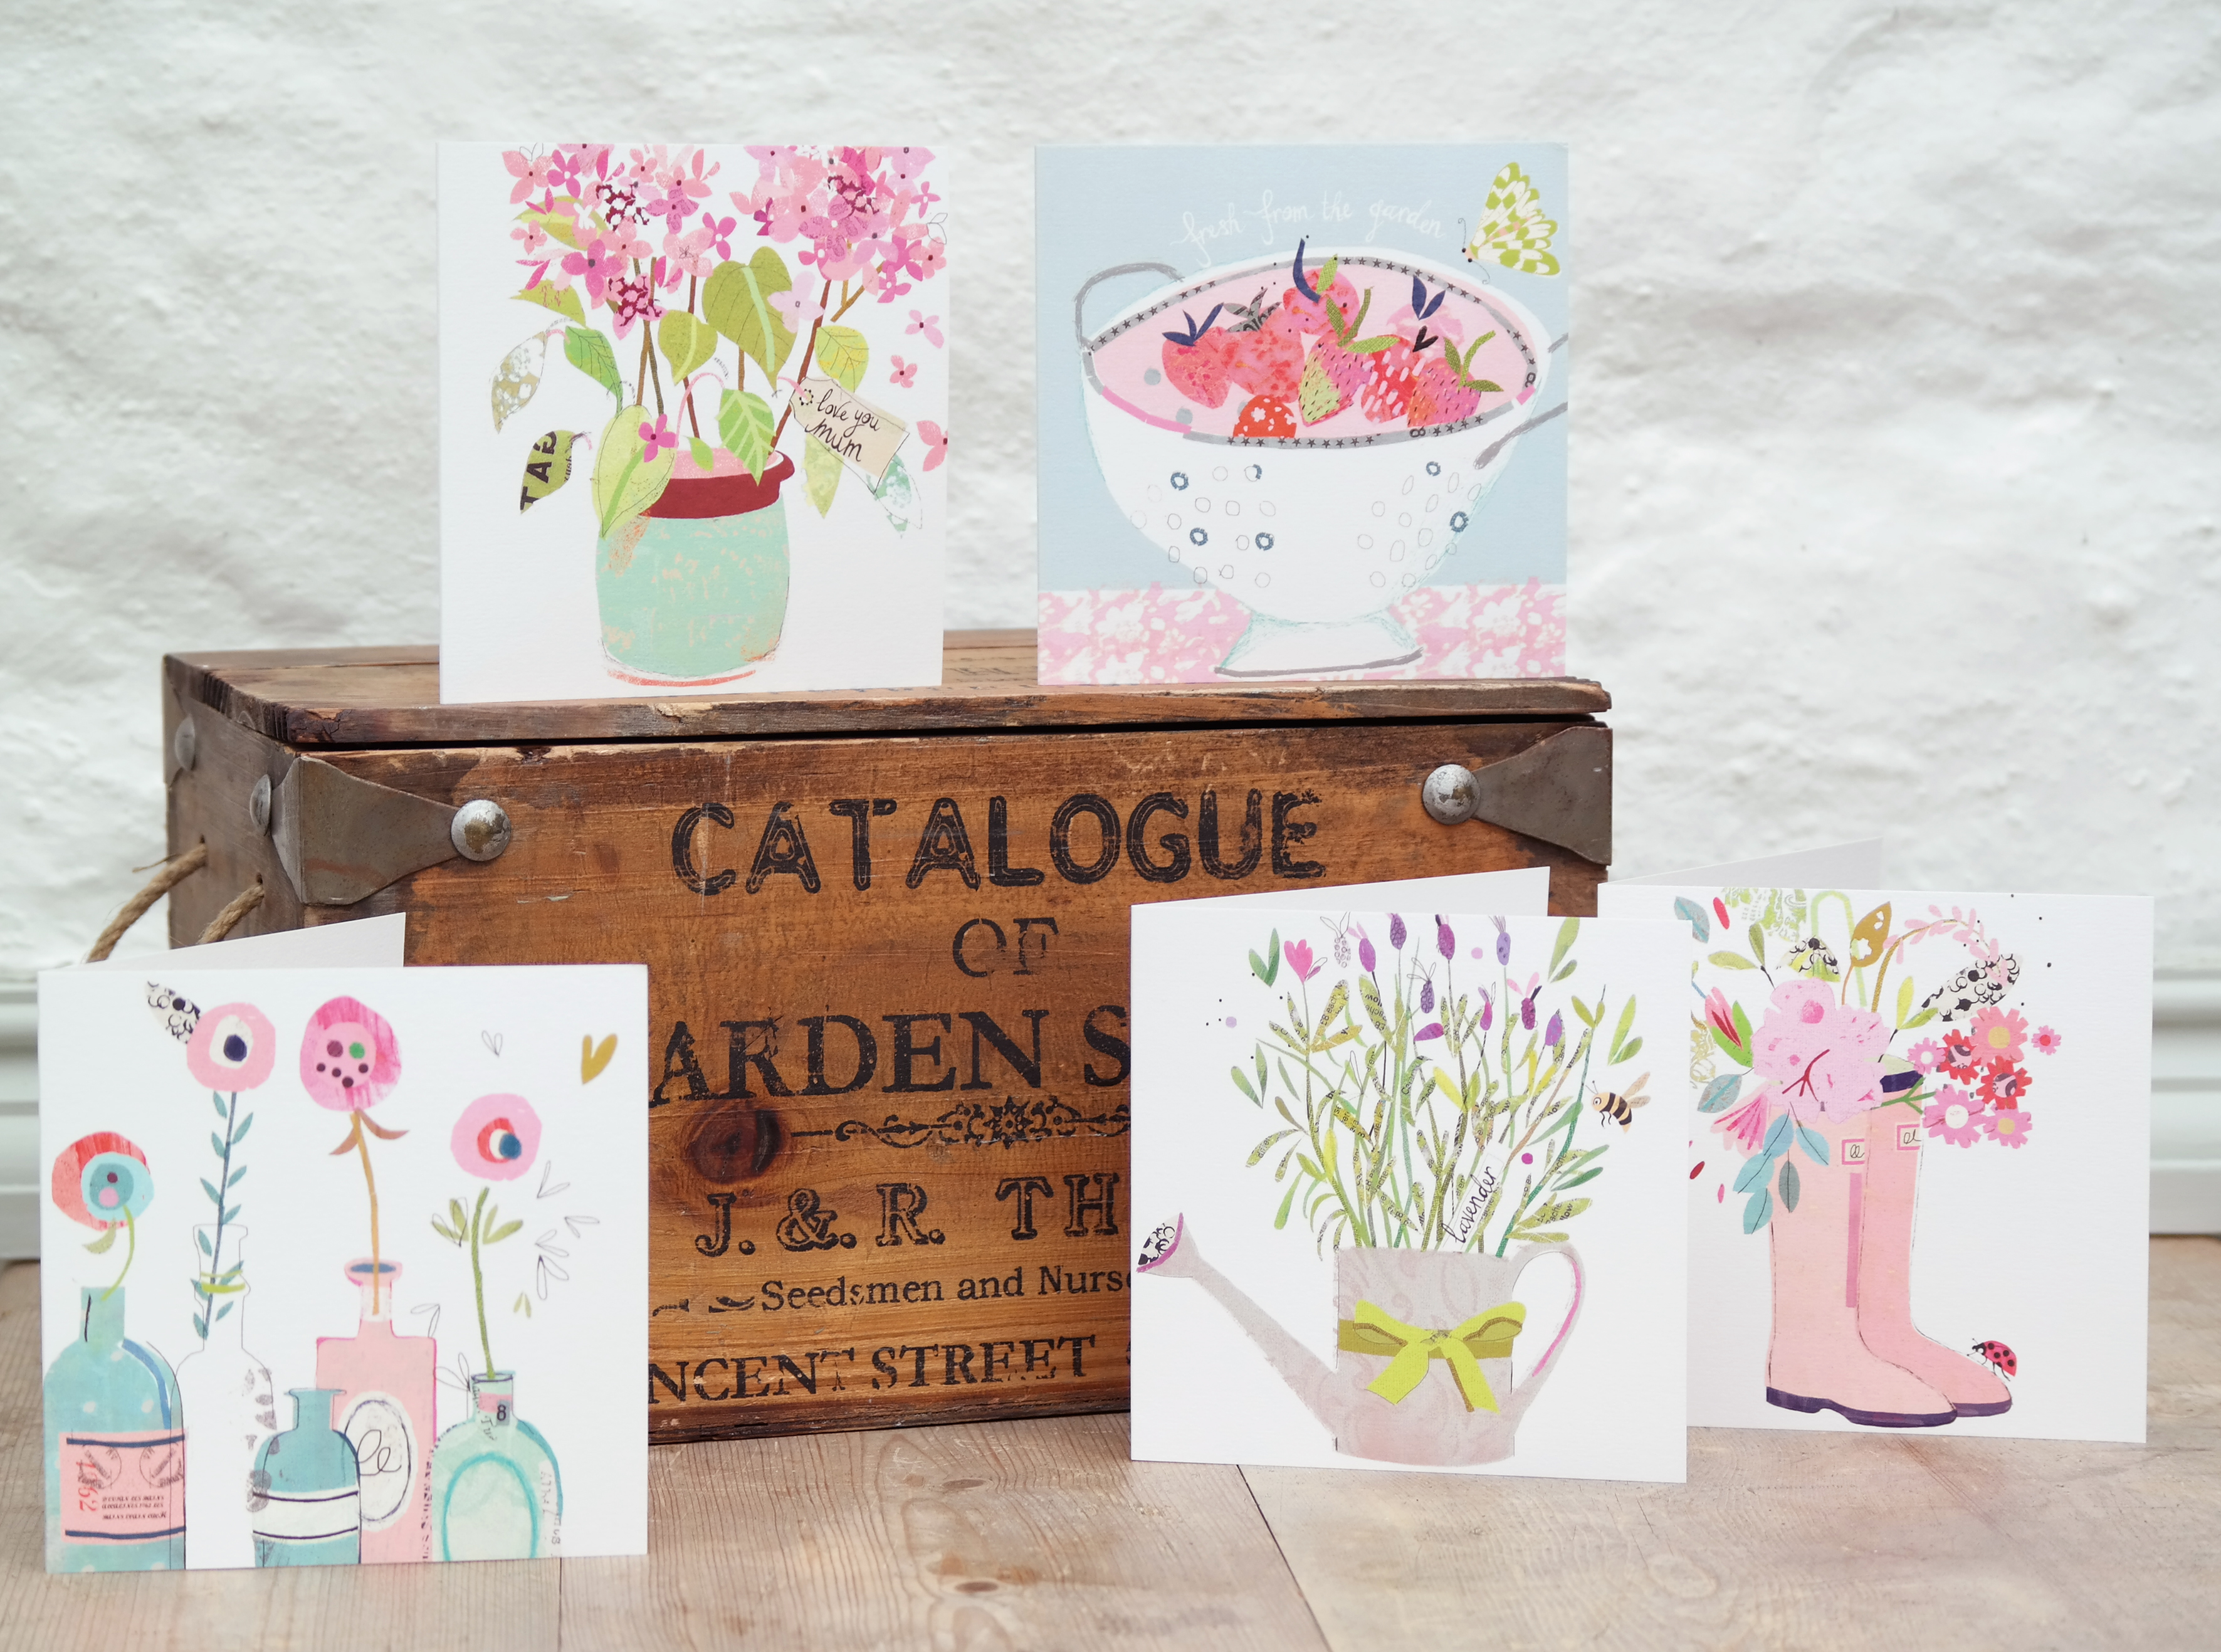 Marks and spencers greeting cards image collections greeting marks and spencers greeting cards gallery greeting card examples anna victoria wendy greetings card anna victoria kristyandbryce Image collections